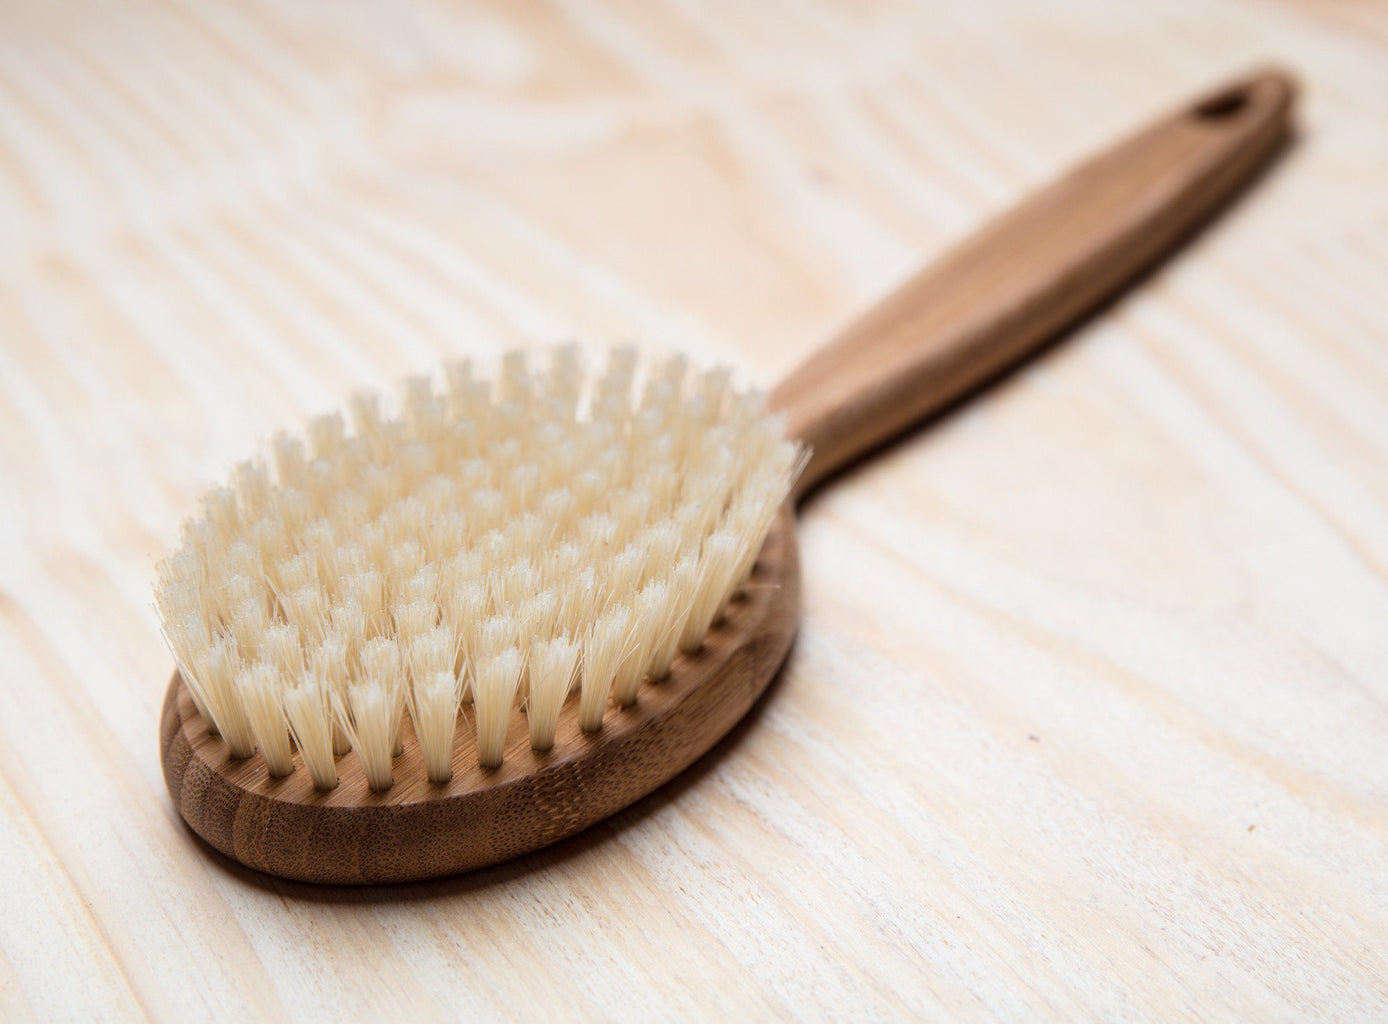 Faller Bamboo Bath Brush with Natural Boar Bristles - Made in Germany Bath Brush Faller